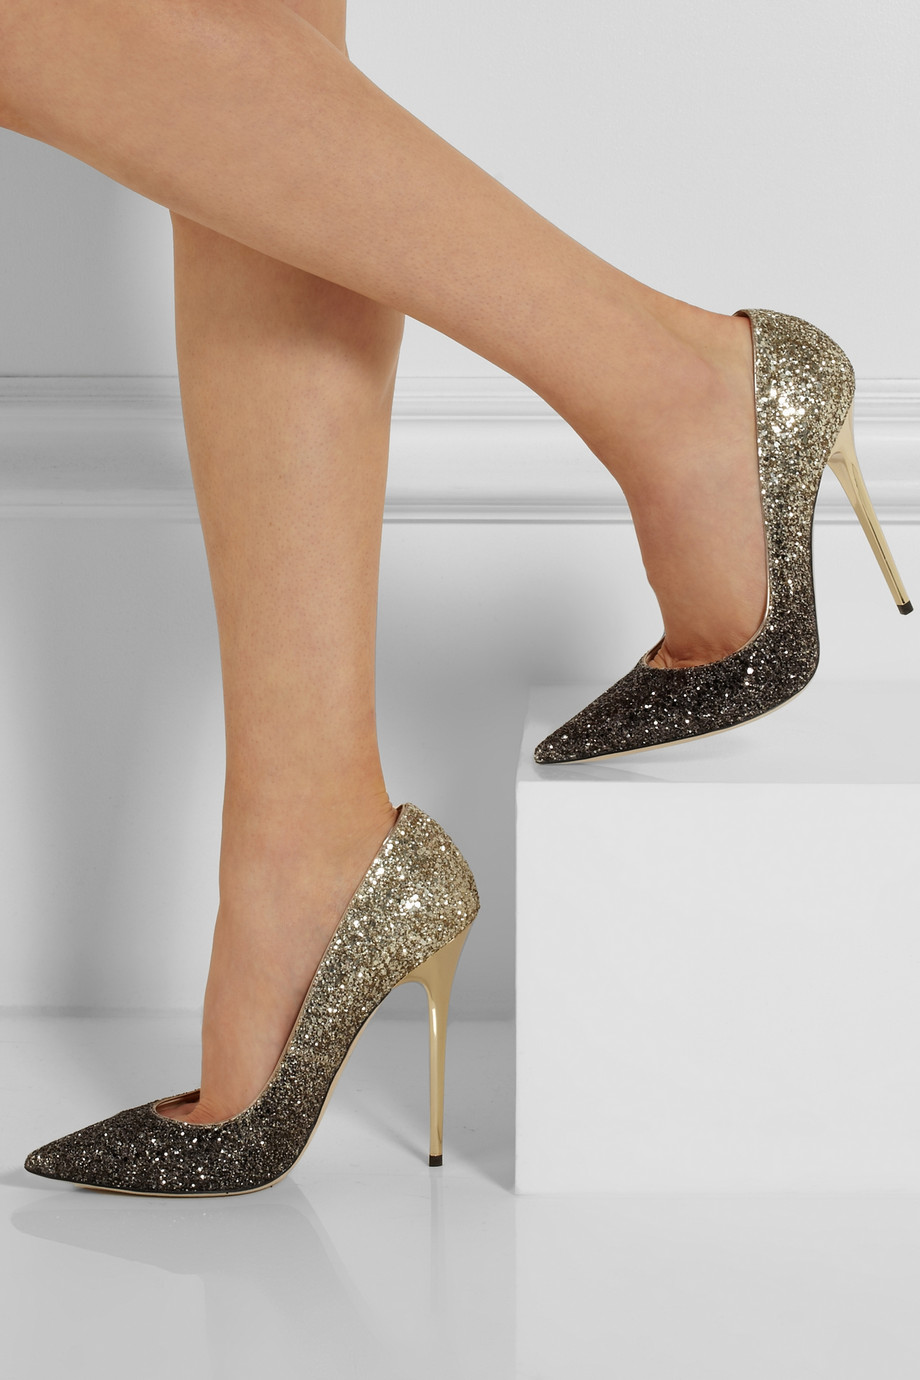 a86440b53a8 Jimmy Choo shoes (and if you prefer a shorter heel version in silver  (swooning again) Jimmy Choo here)